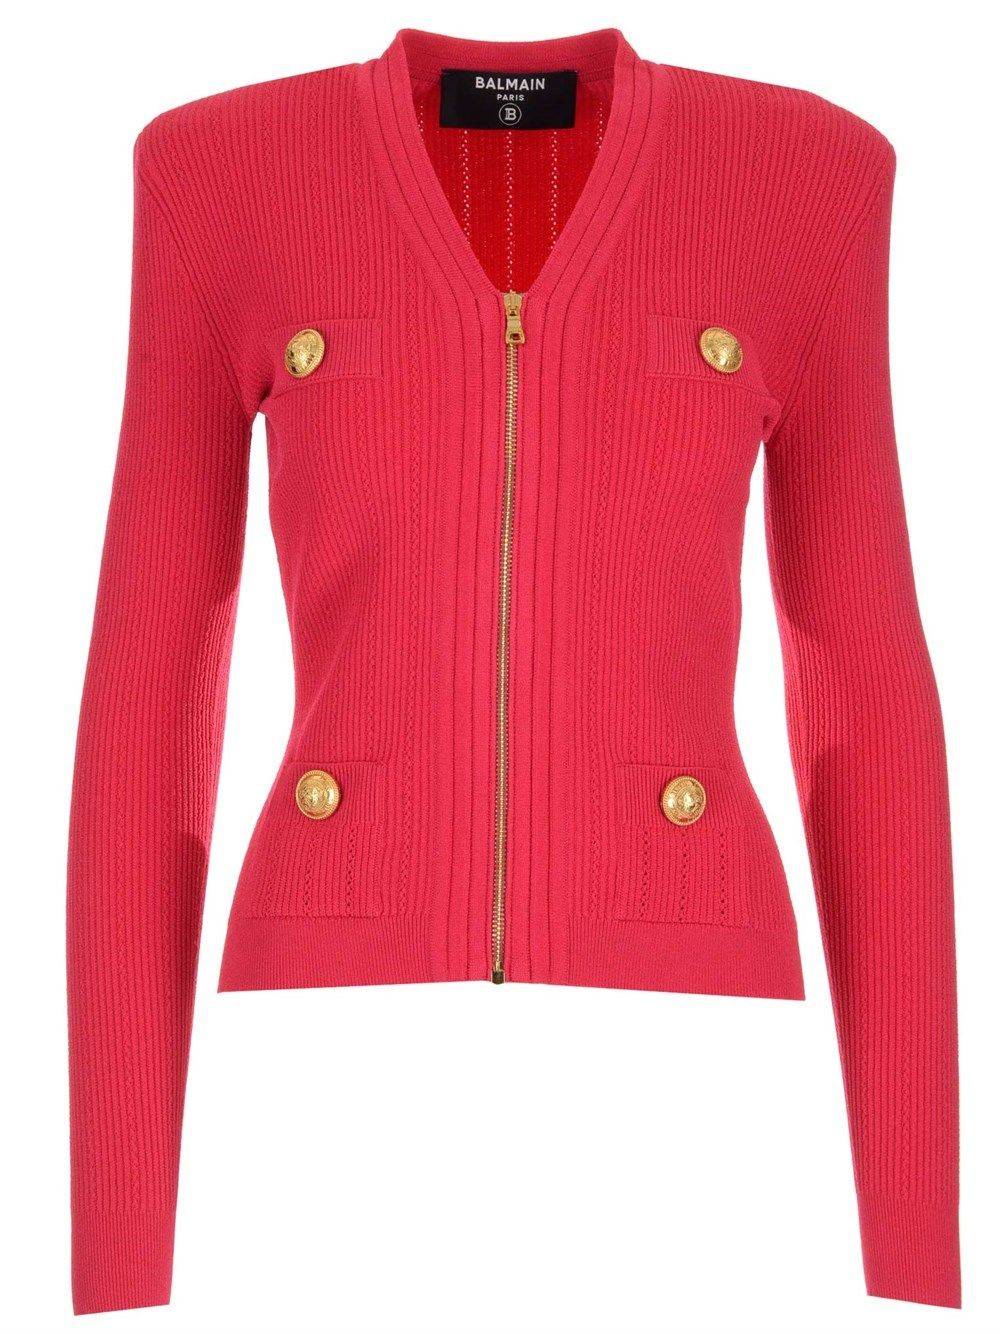 Balmain BALMAIN WOMEN'S VF0SK030K2114PK PINK OTHER MATERIALS JACKET